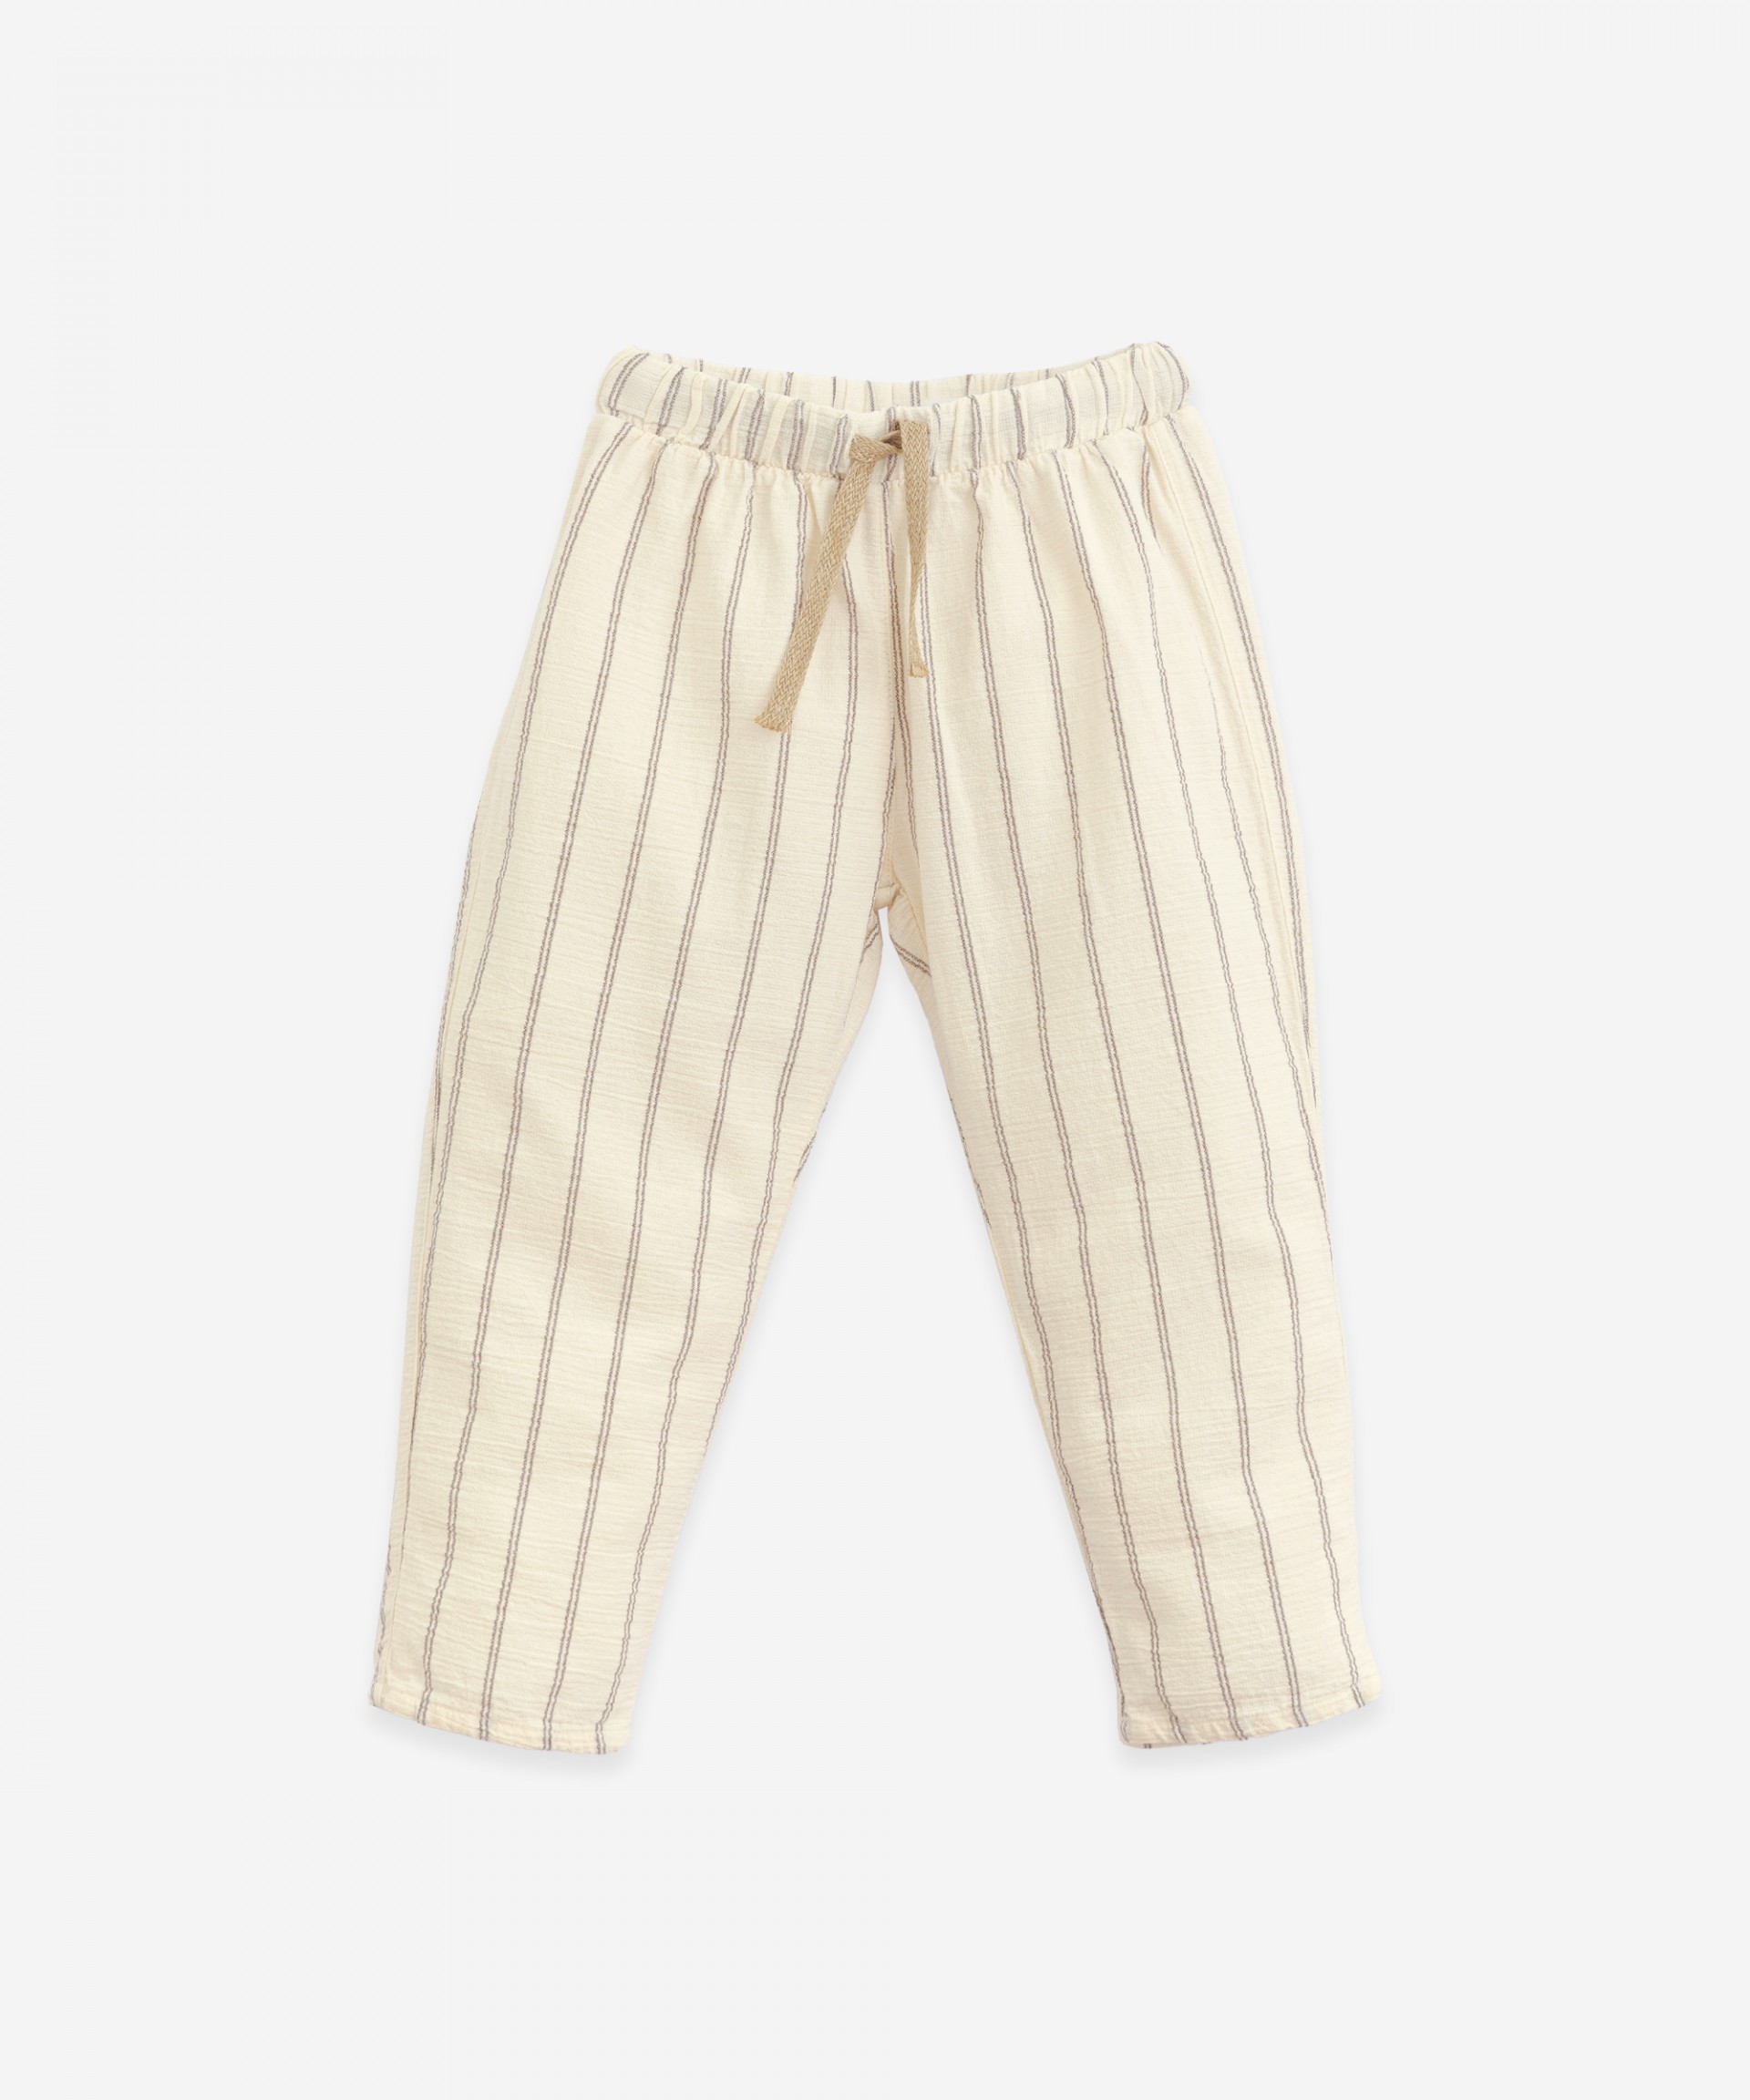 Trousers with a cord | Botany